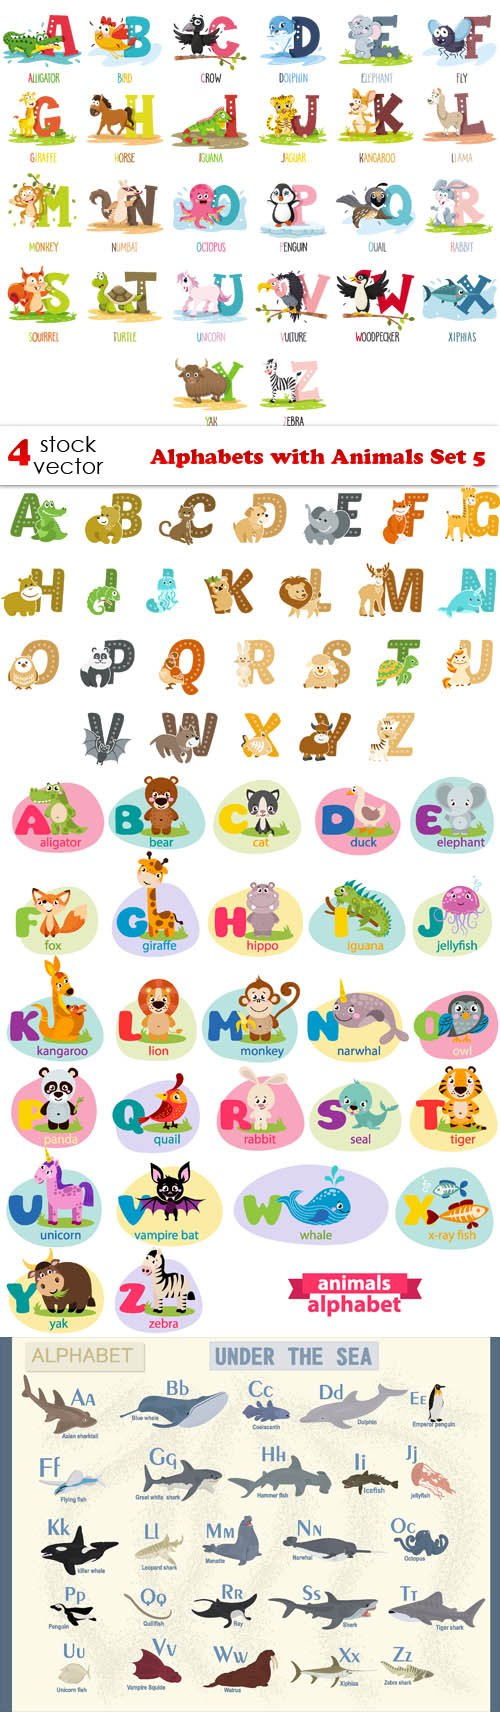 Vectors - Alphabets with Animals Set 5